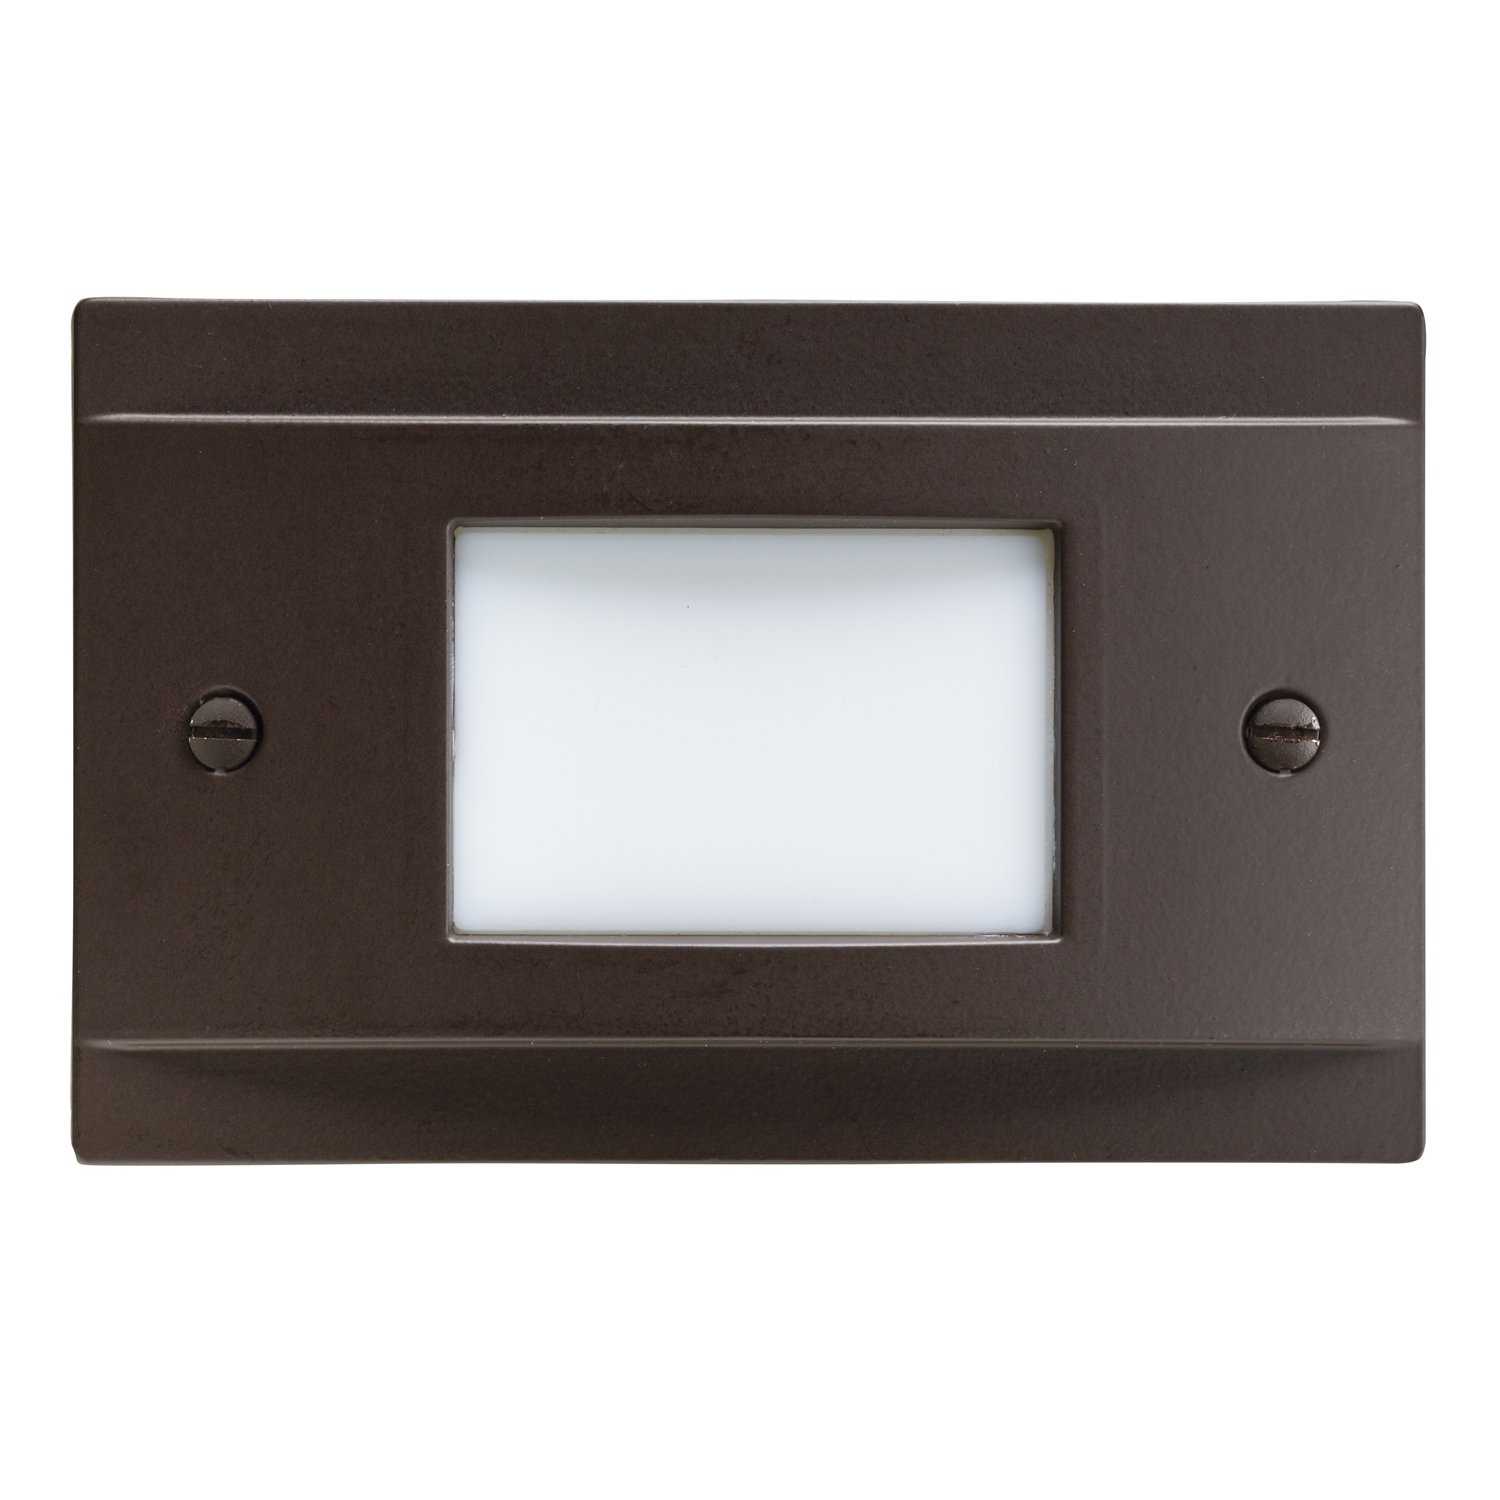 Kichler 12665AZ Step and Hall 120V LED Step Light Non-Dimmable, Architectural Bronze